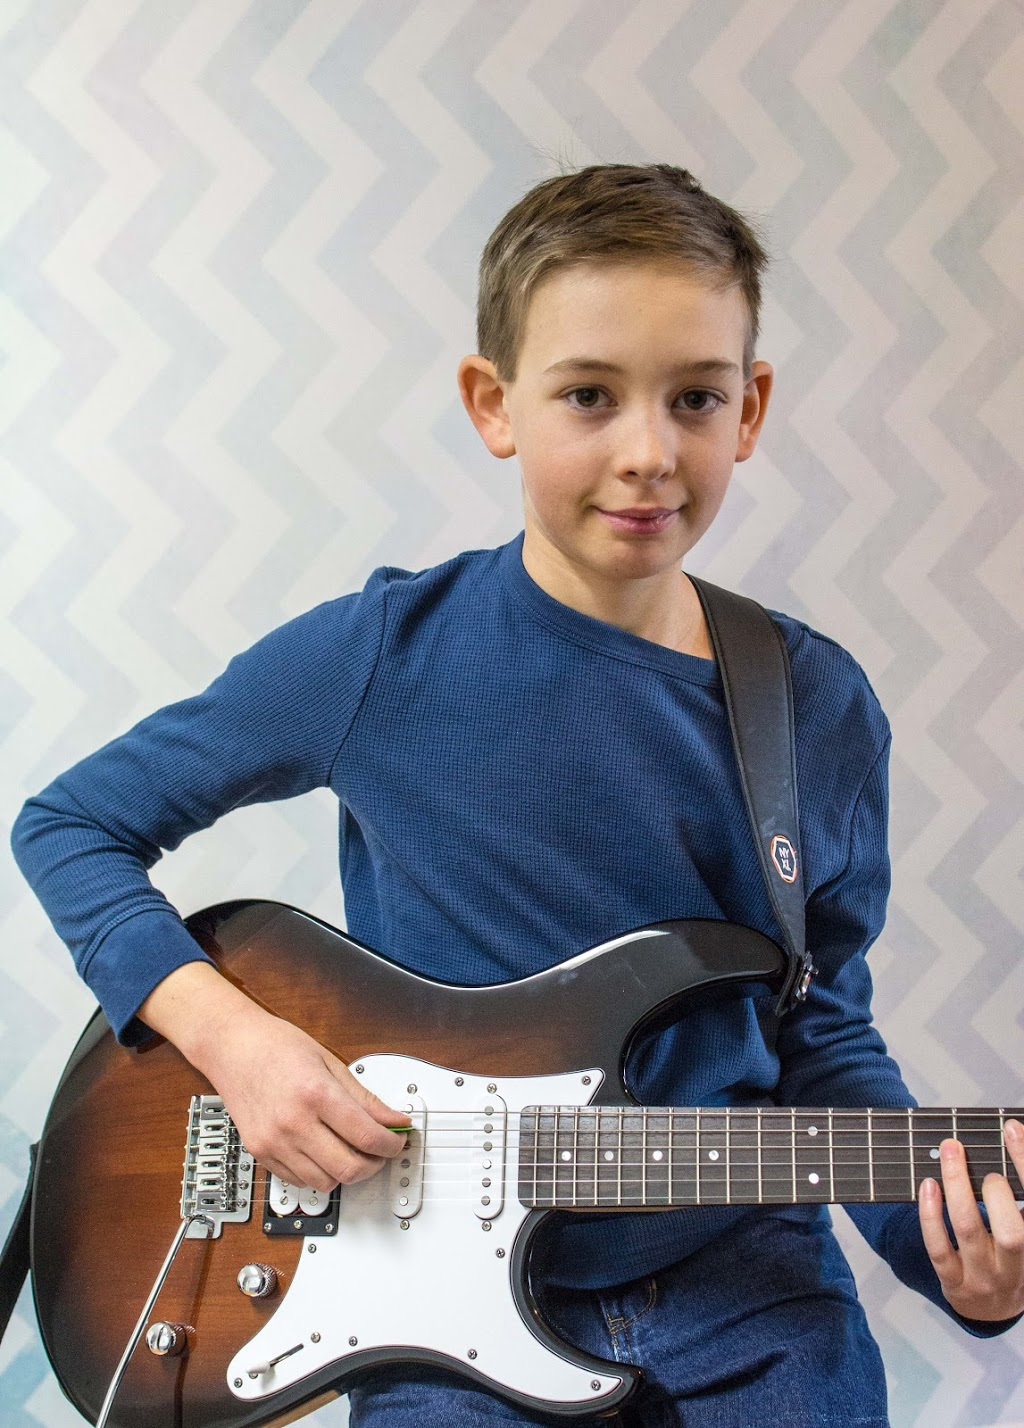 Waterdown Music Academy | electronics store | 279 Dundas St E, Waterdown, ON L0R 2H6, Canada | 9056908010 OR +1 905-690-8010